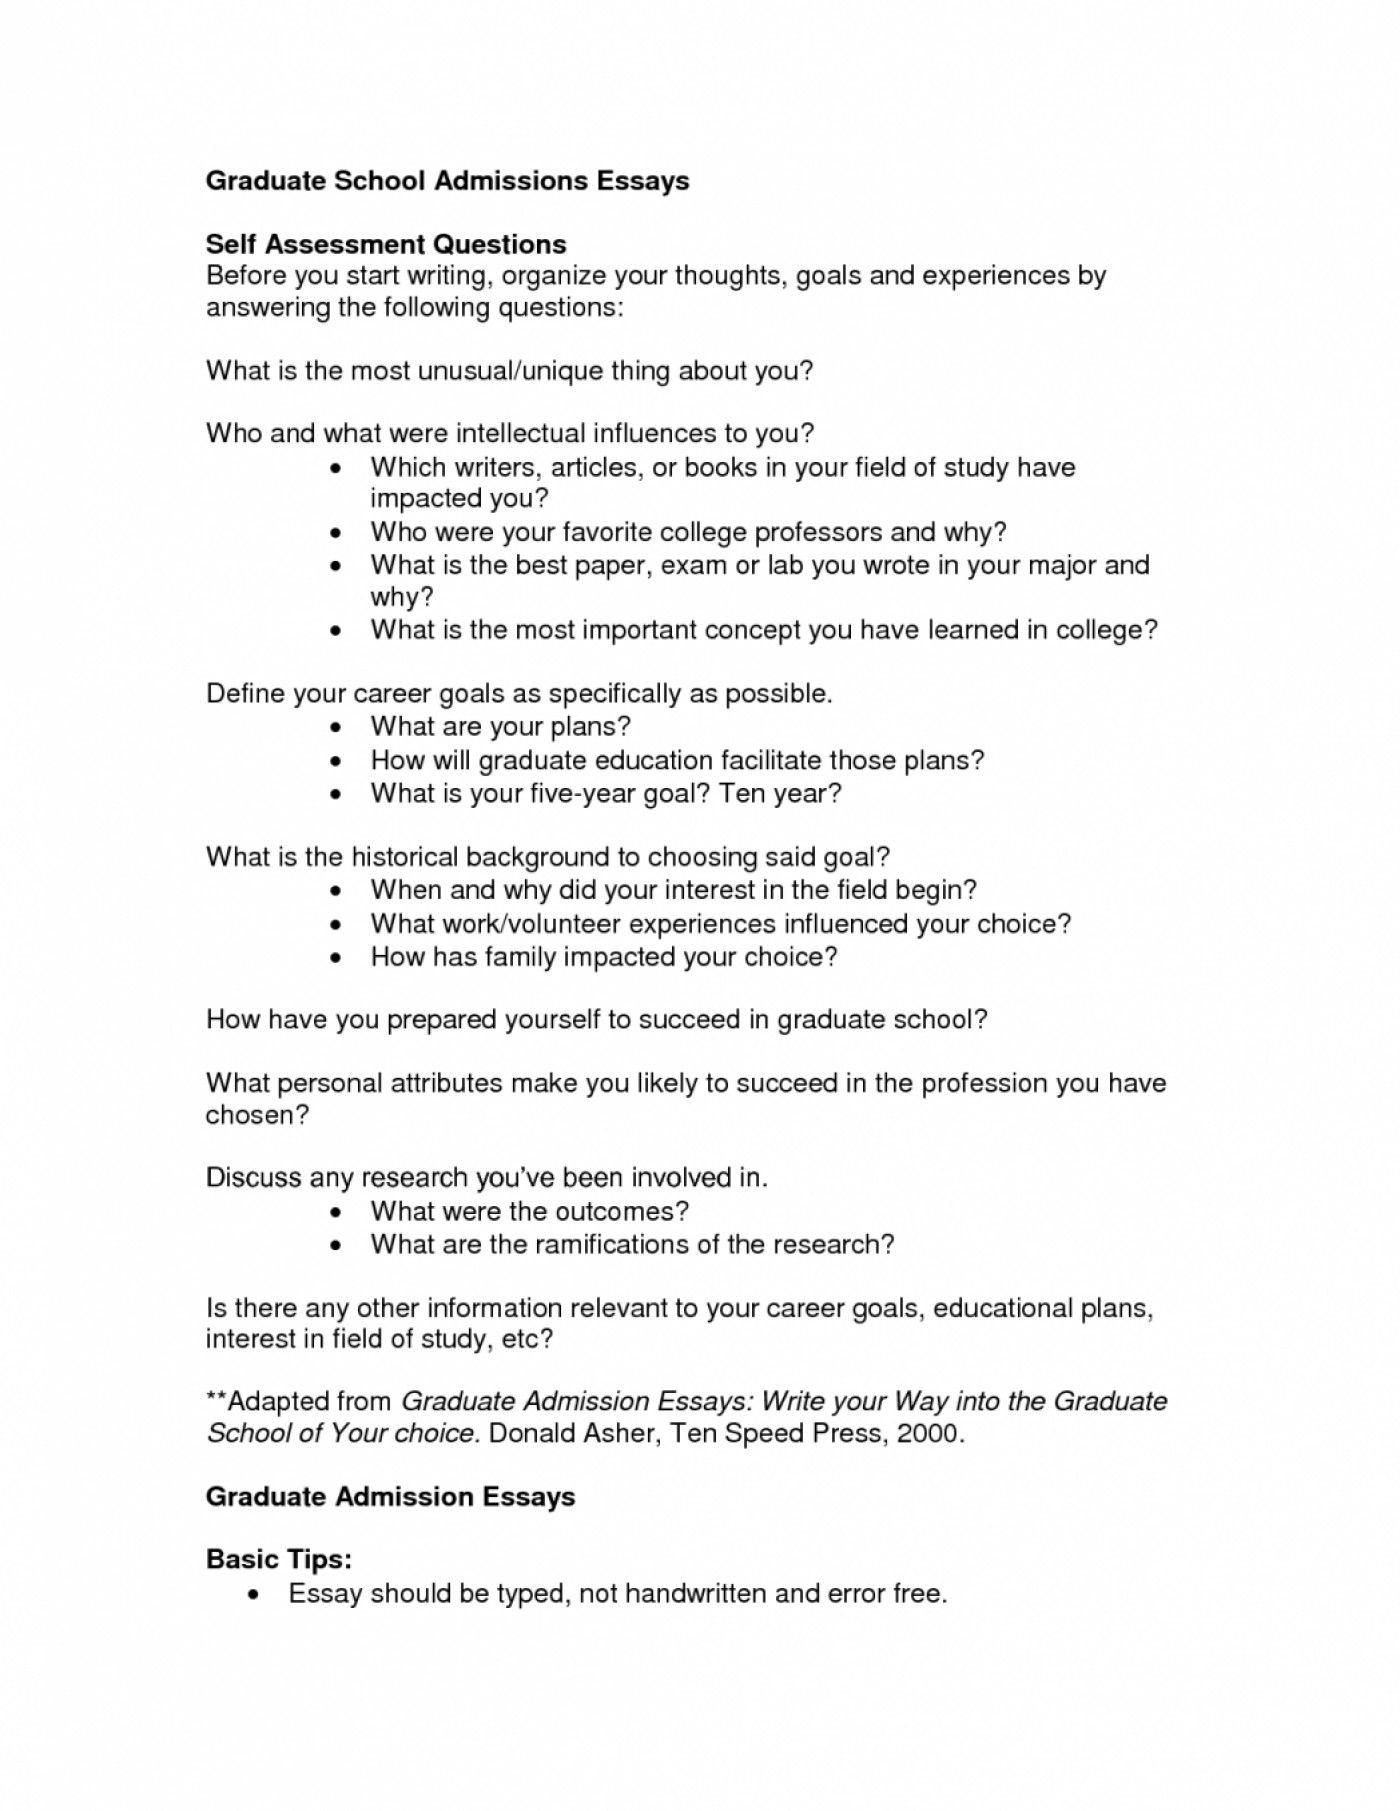 011 Essay Example Do Myaduate Essays Custom Writing Company An For School Application Gp7xjad Personal Sample Social Work Autobiographical College Psychology 1048x1356 Surprising Graduate Admission Nursing 1400